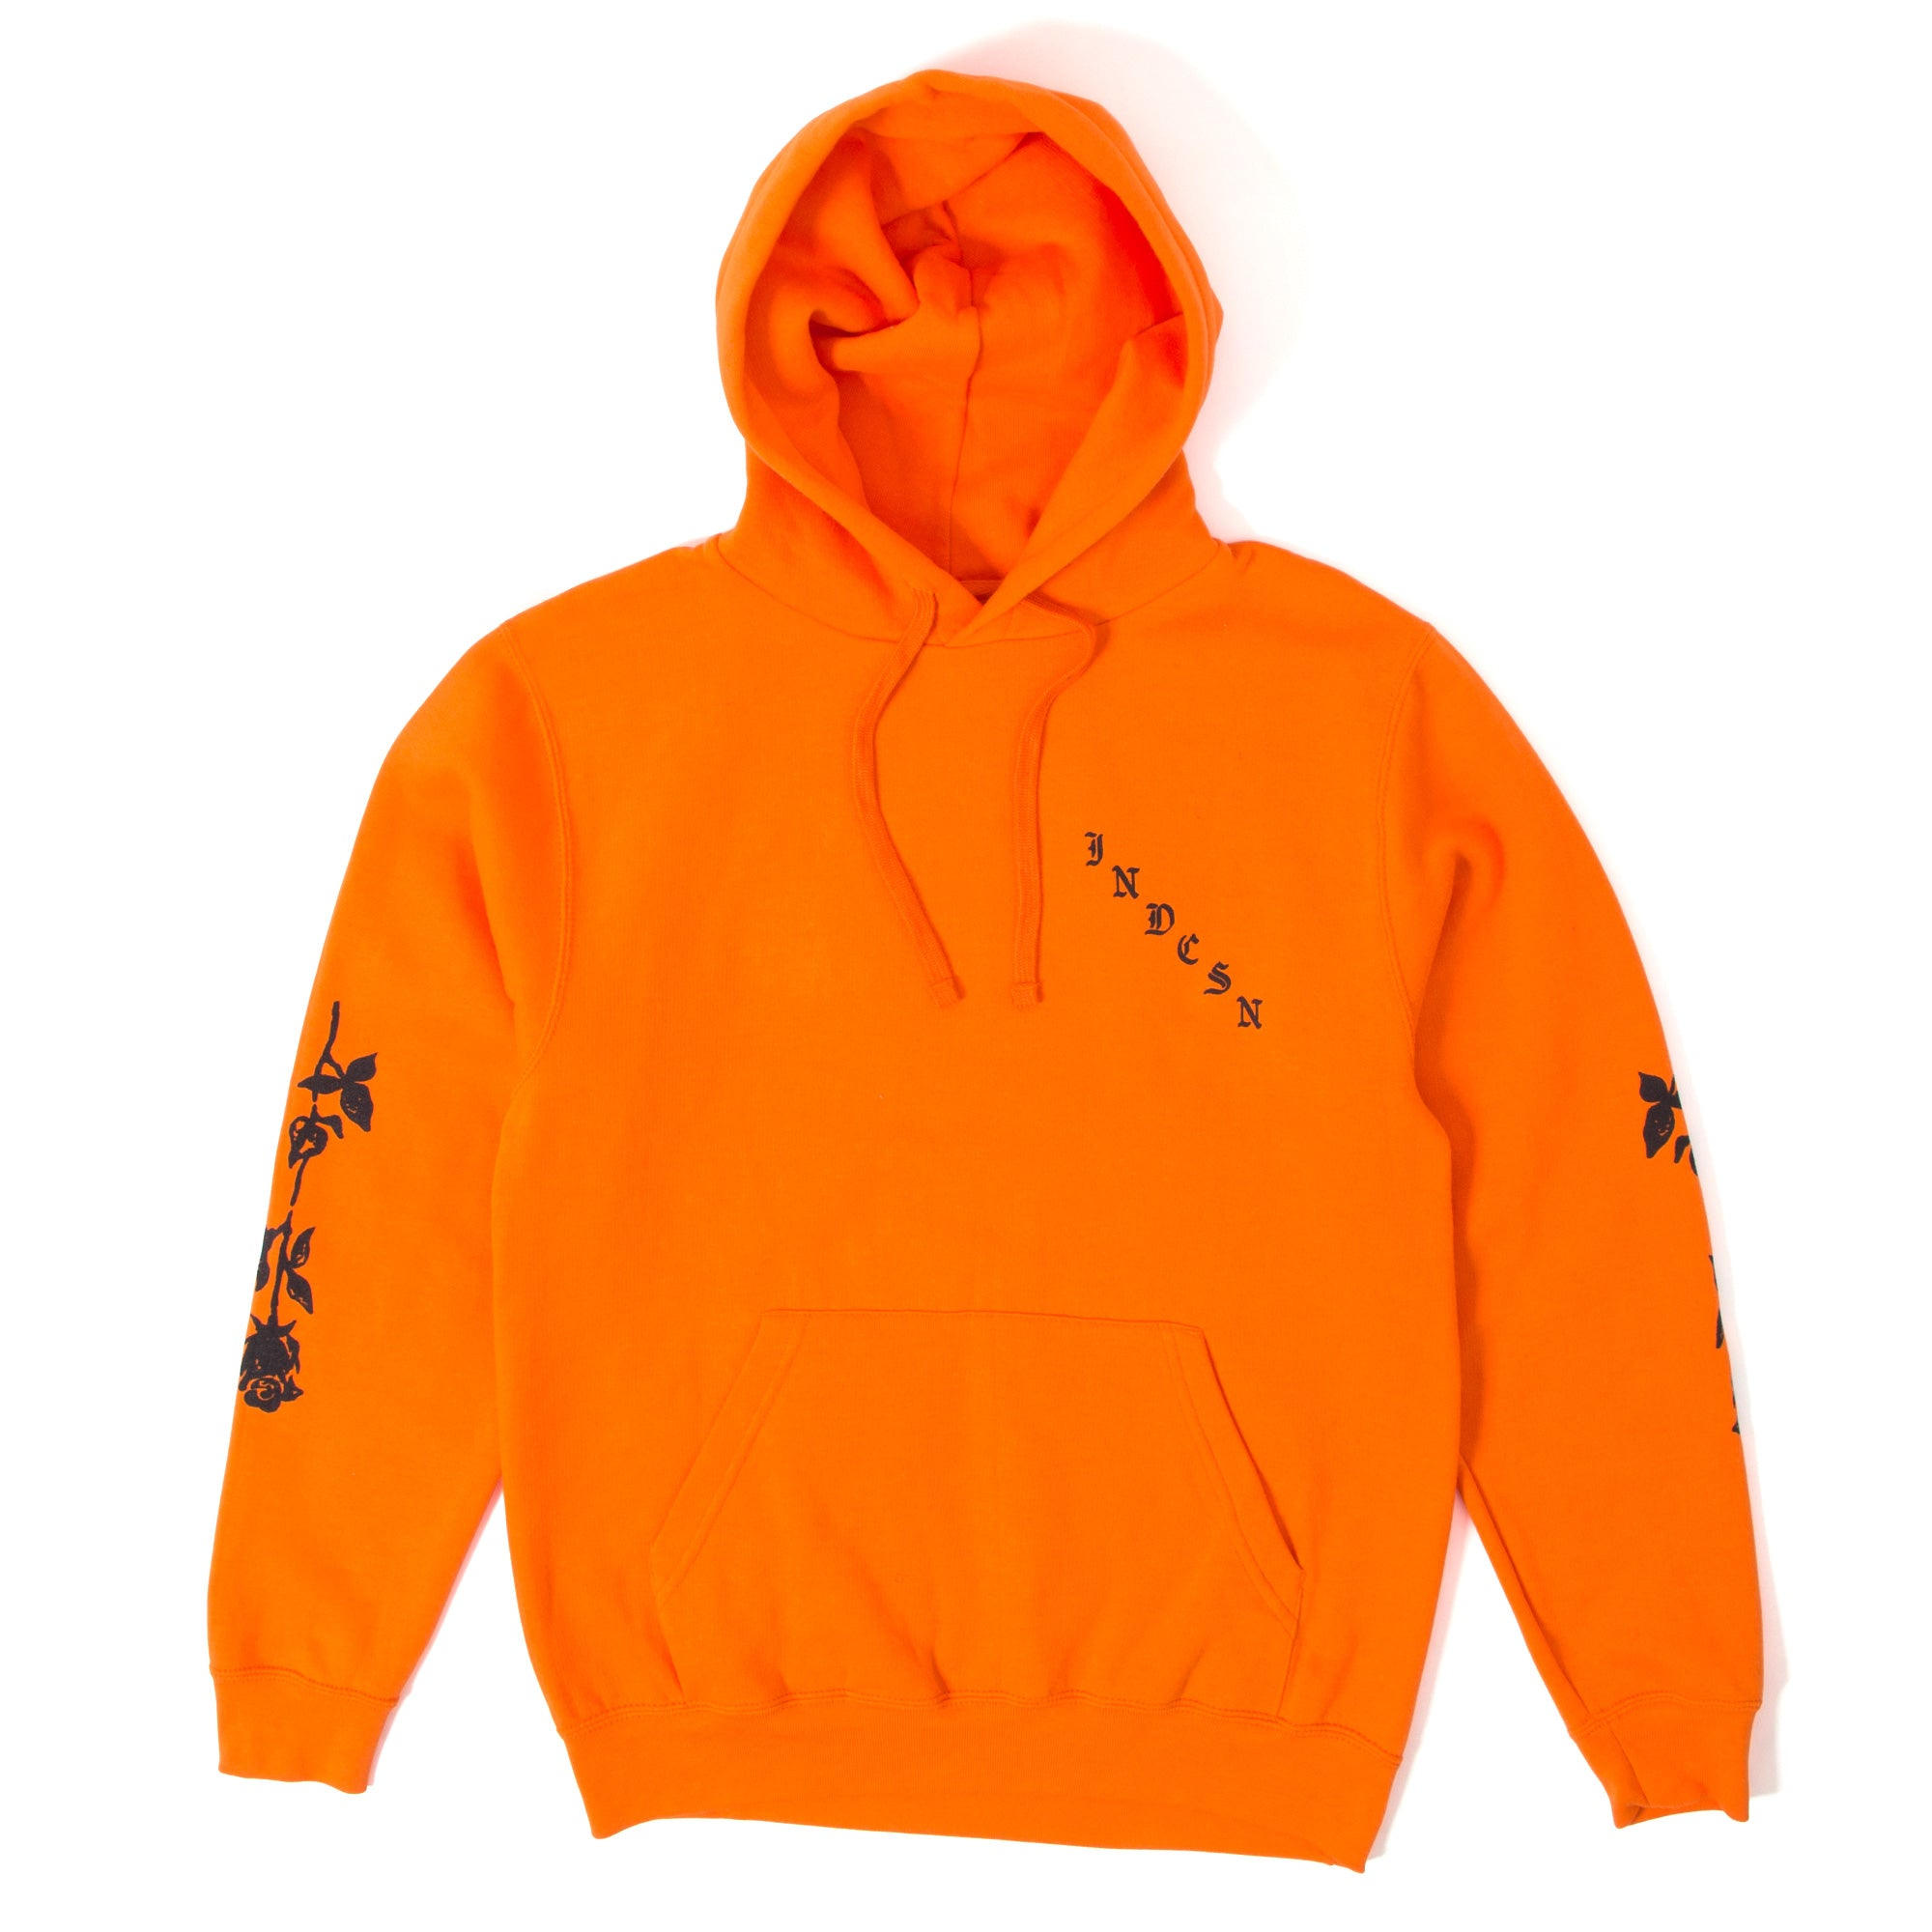 X My Heart Pullover Hoody - Orange